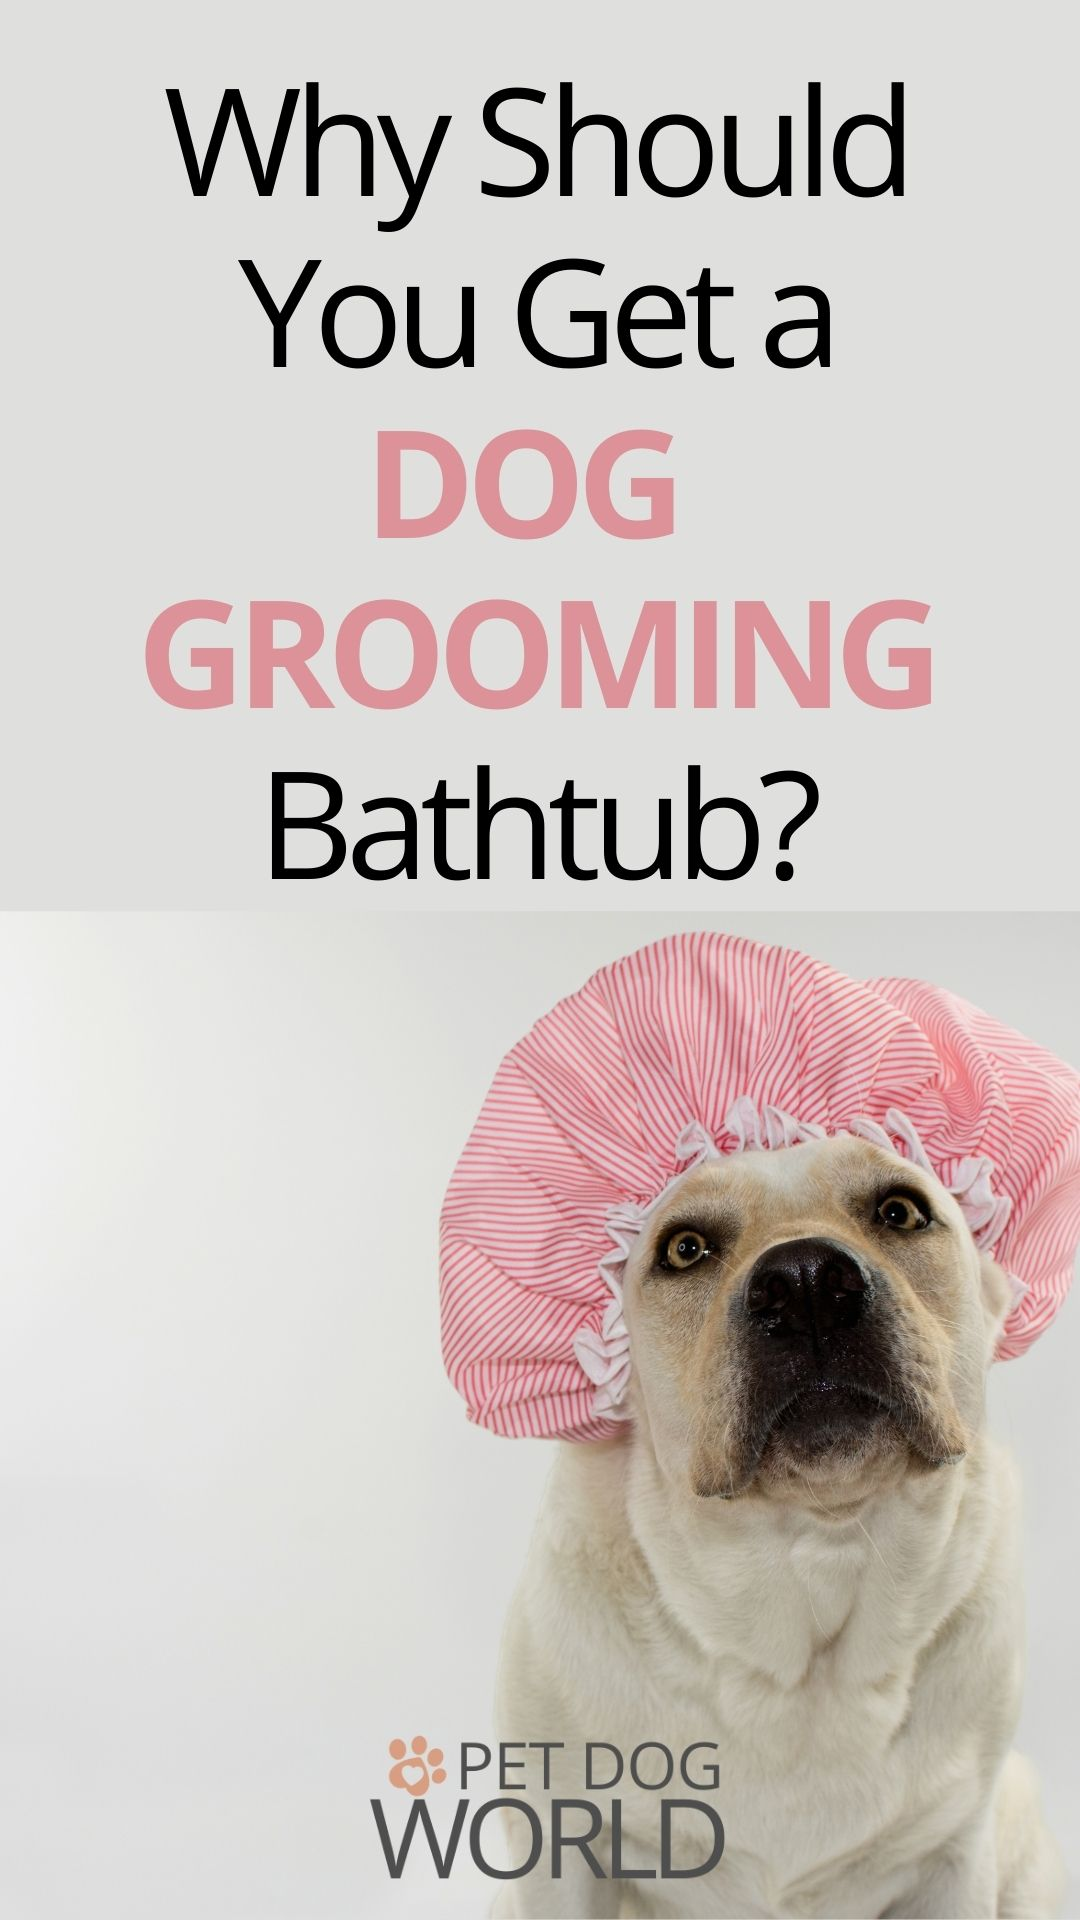 There's nothing better than spending time with your dog and getting him cleaned up at the same time. To do this more efficiently, you should get a bathtub just for your faithful friend.